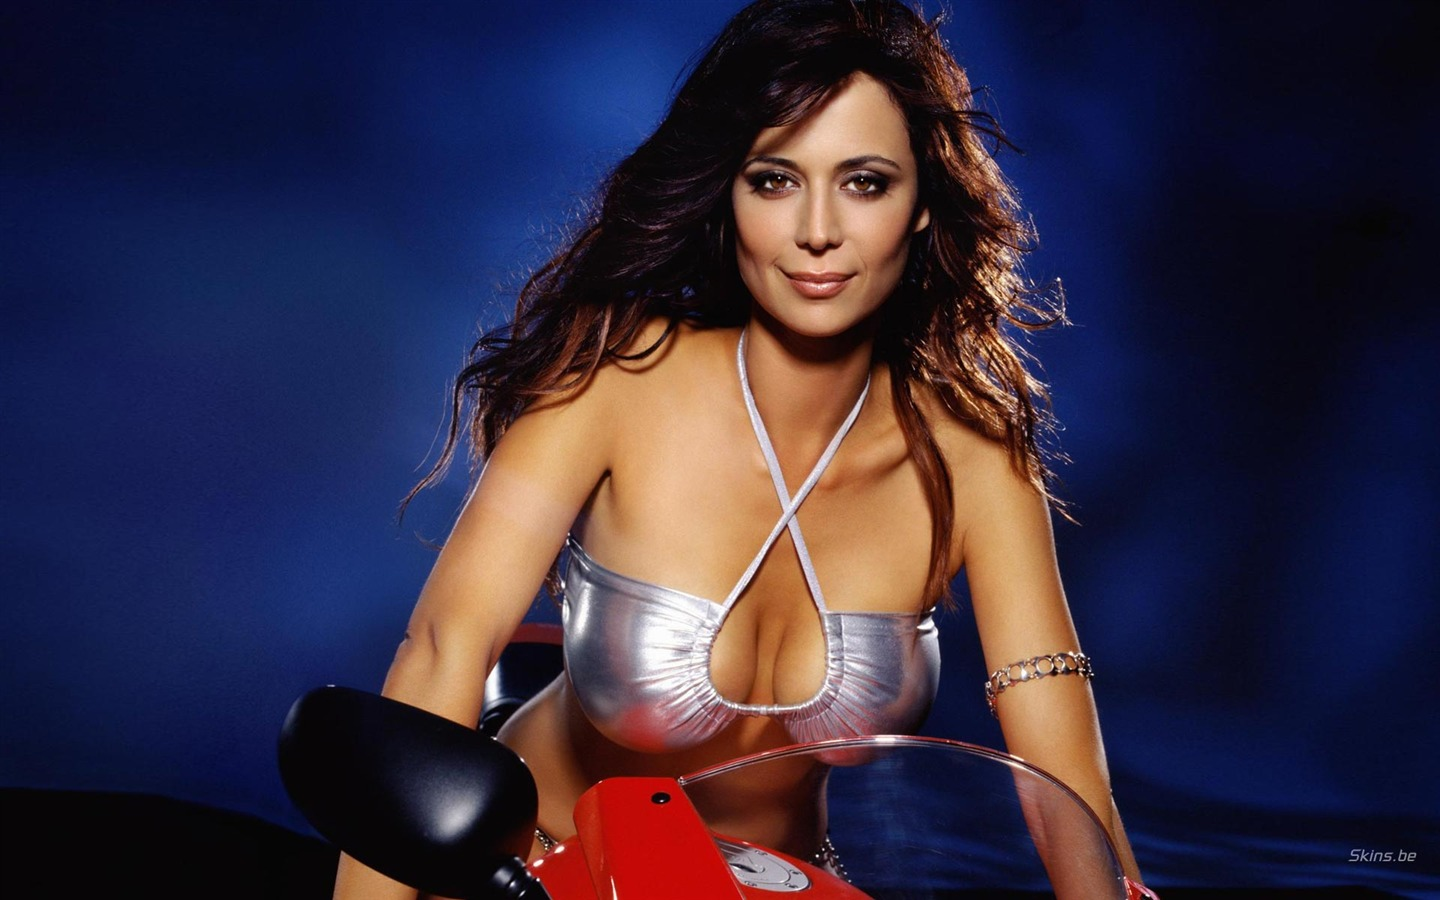 Catherine Bell #021 - 1440x900 Wallpapers Pictures Photos Images